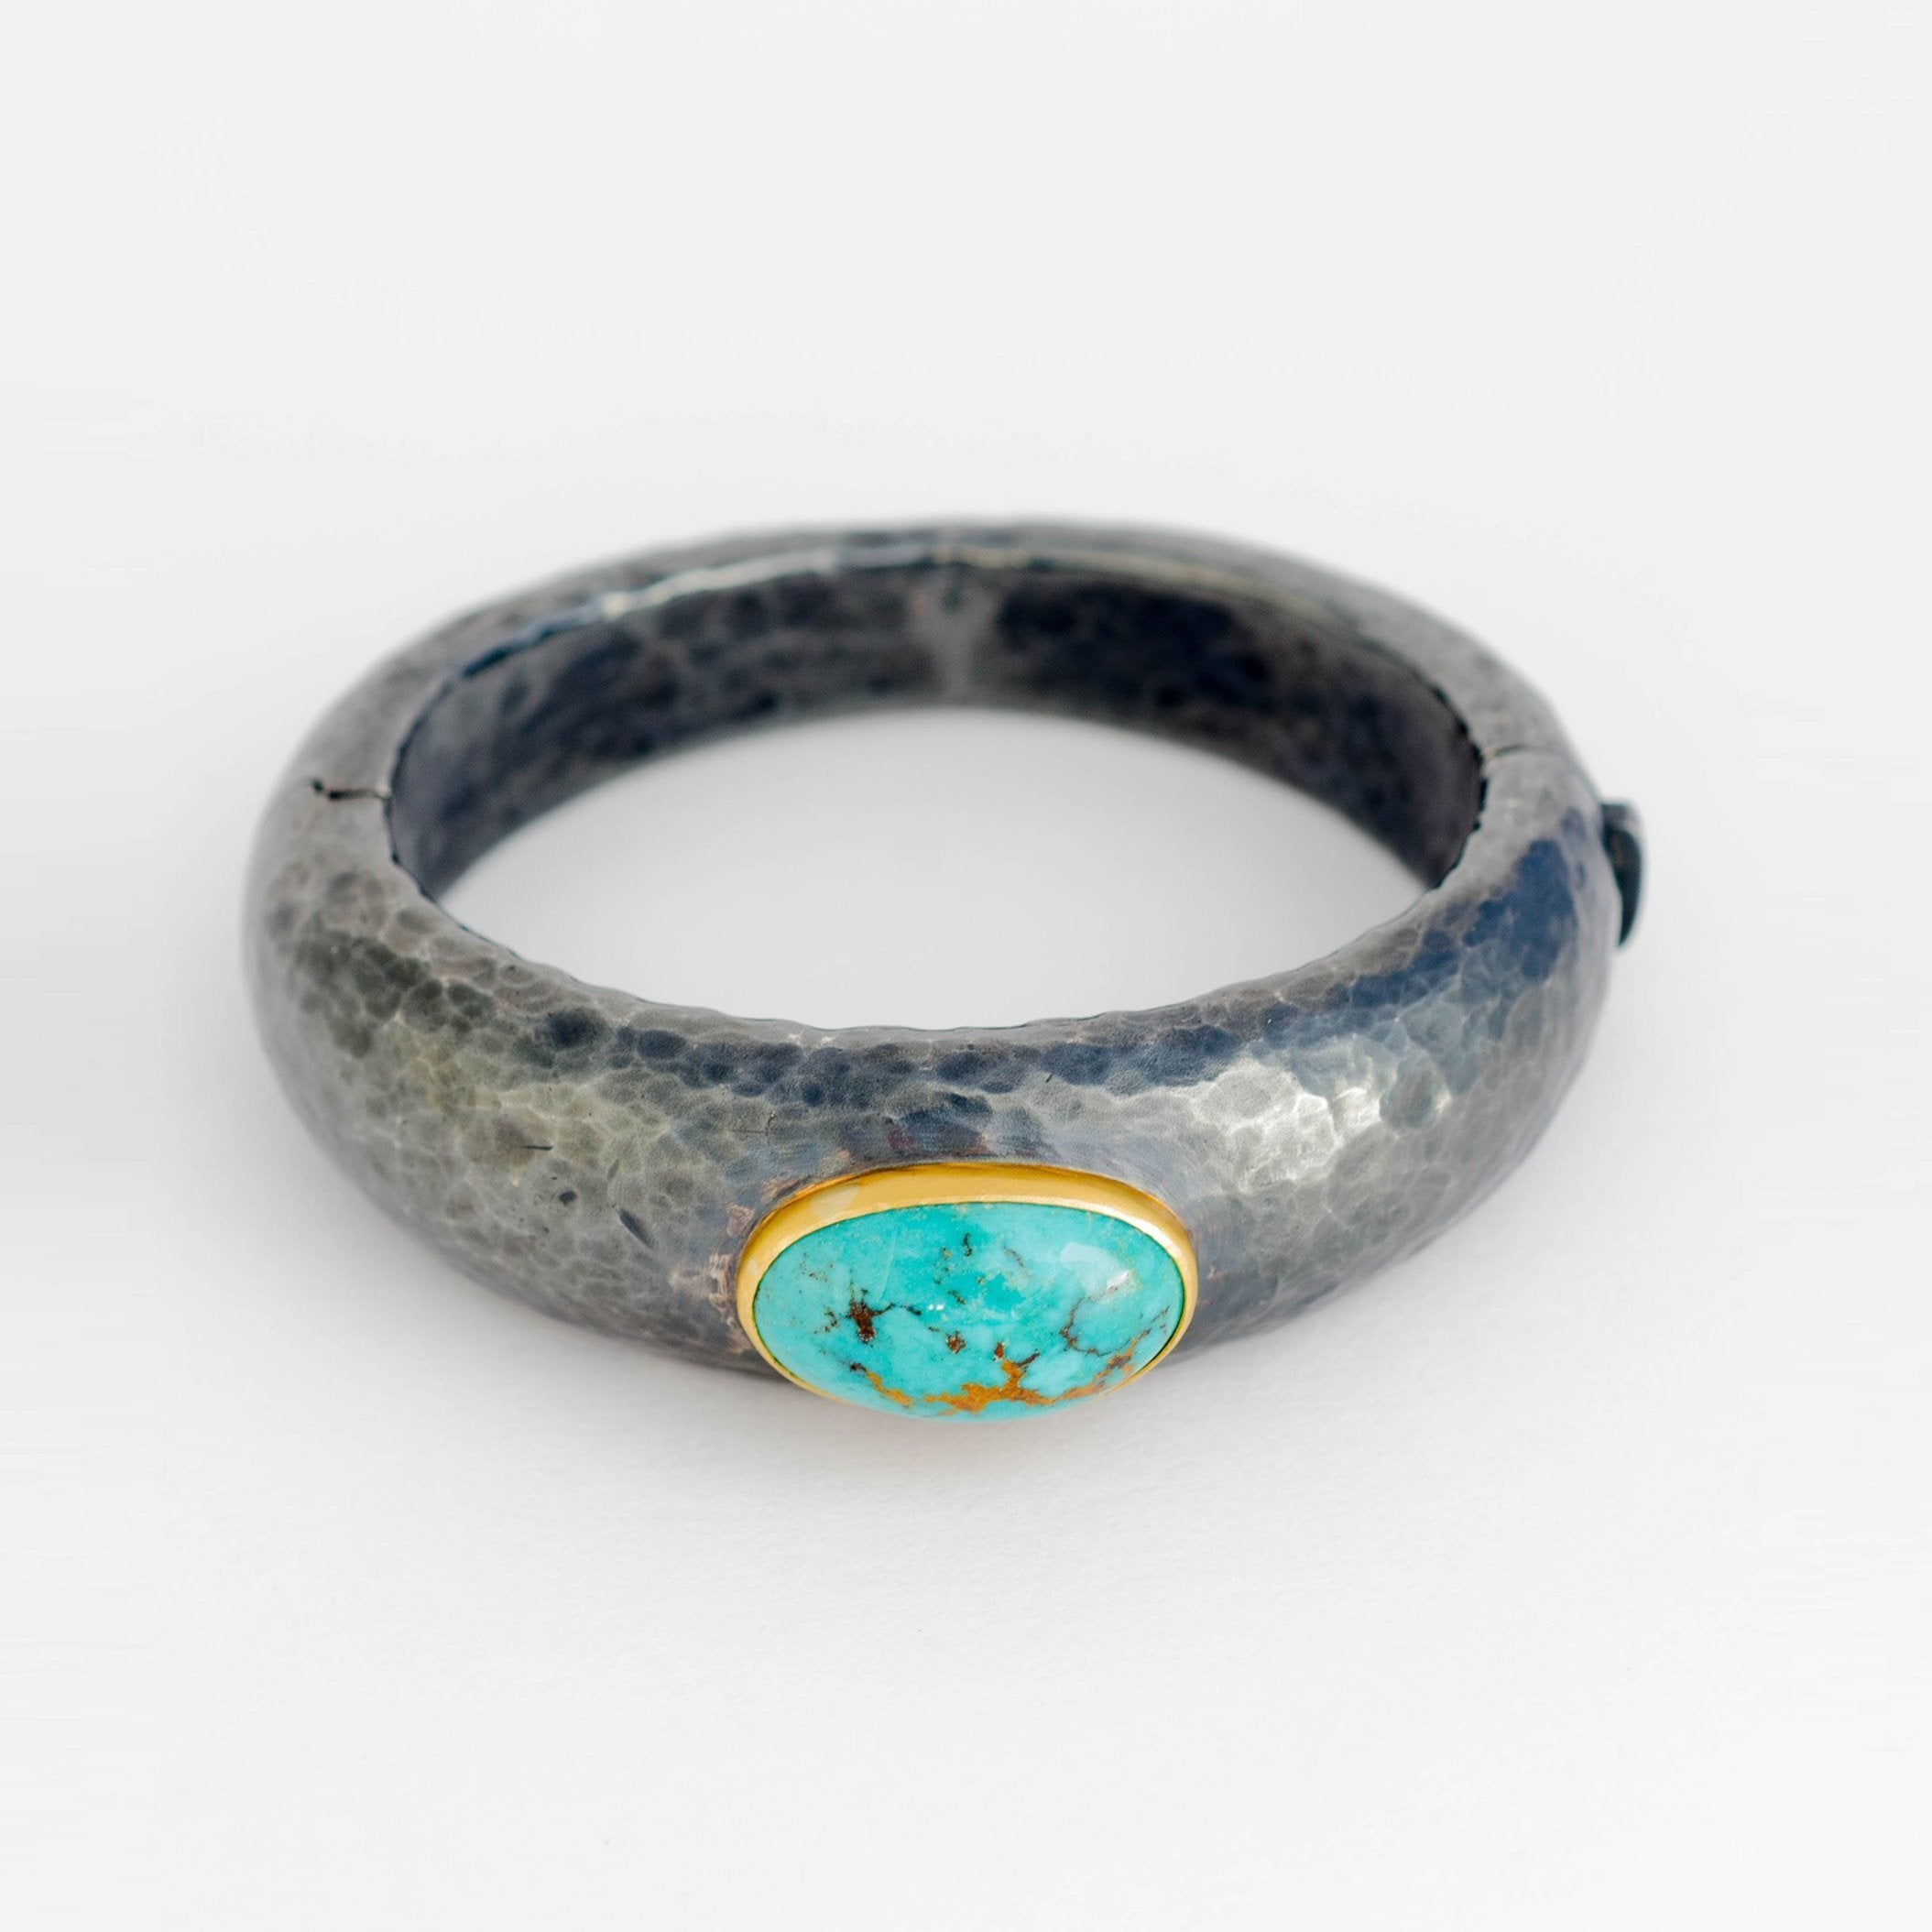 Turquoise, Silver & Gold Bracelet